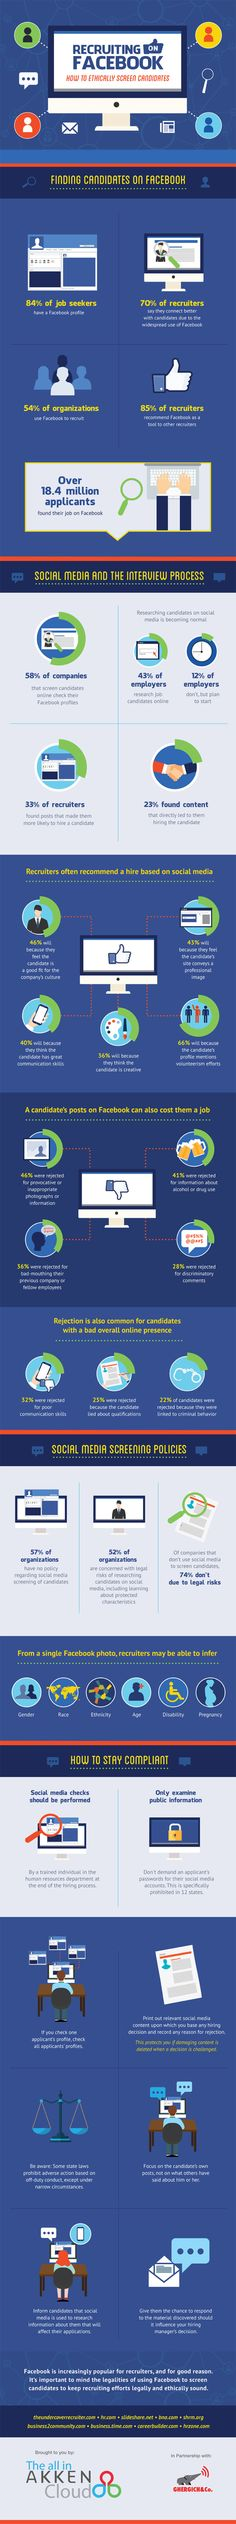 How to Use #Facebook to Recruit Awesome Staff  #SocialMedia #Infographic